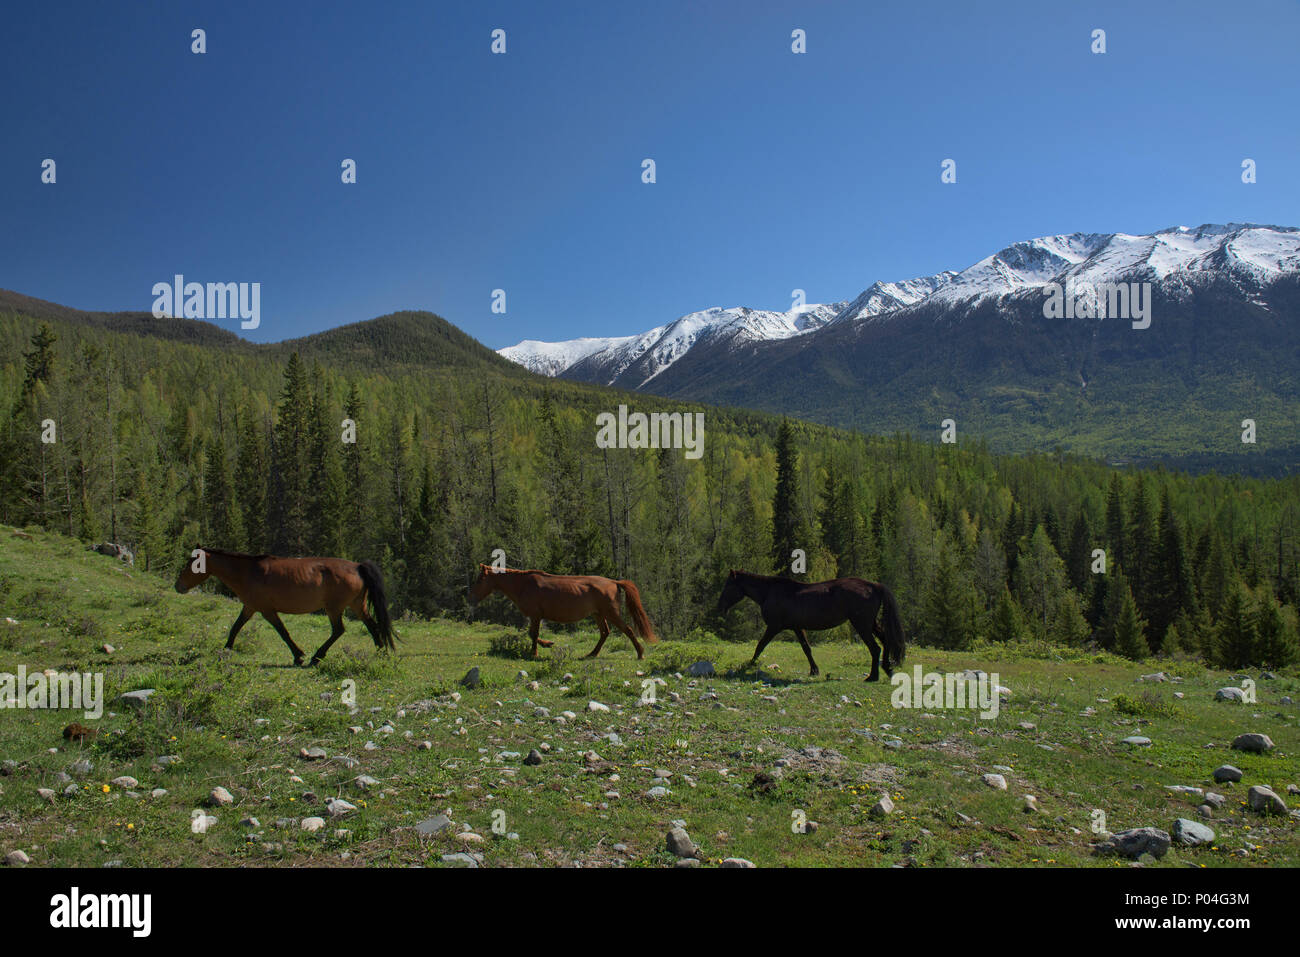 Kazakh horses at Kanas Lake National Park, Xinjiang, China - Stock Image